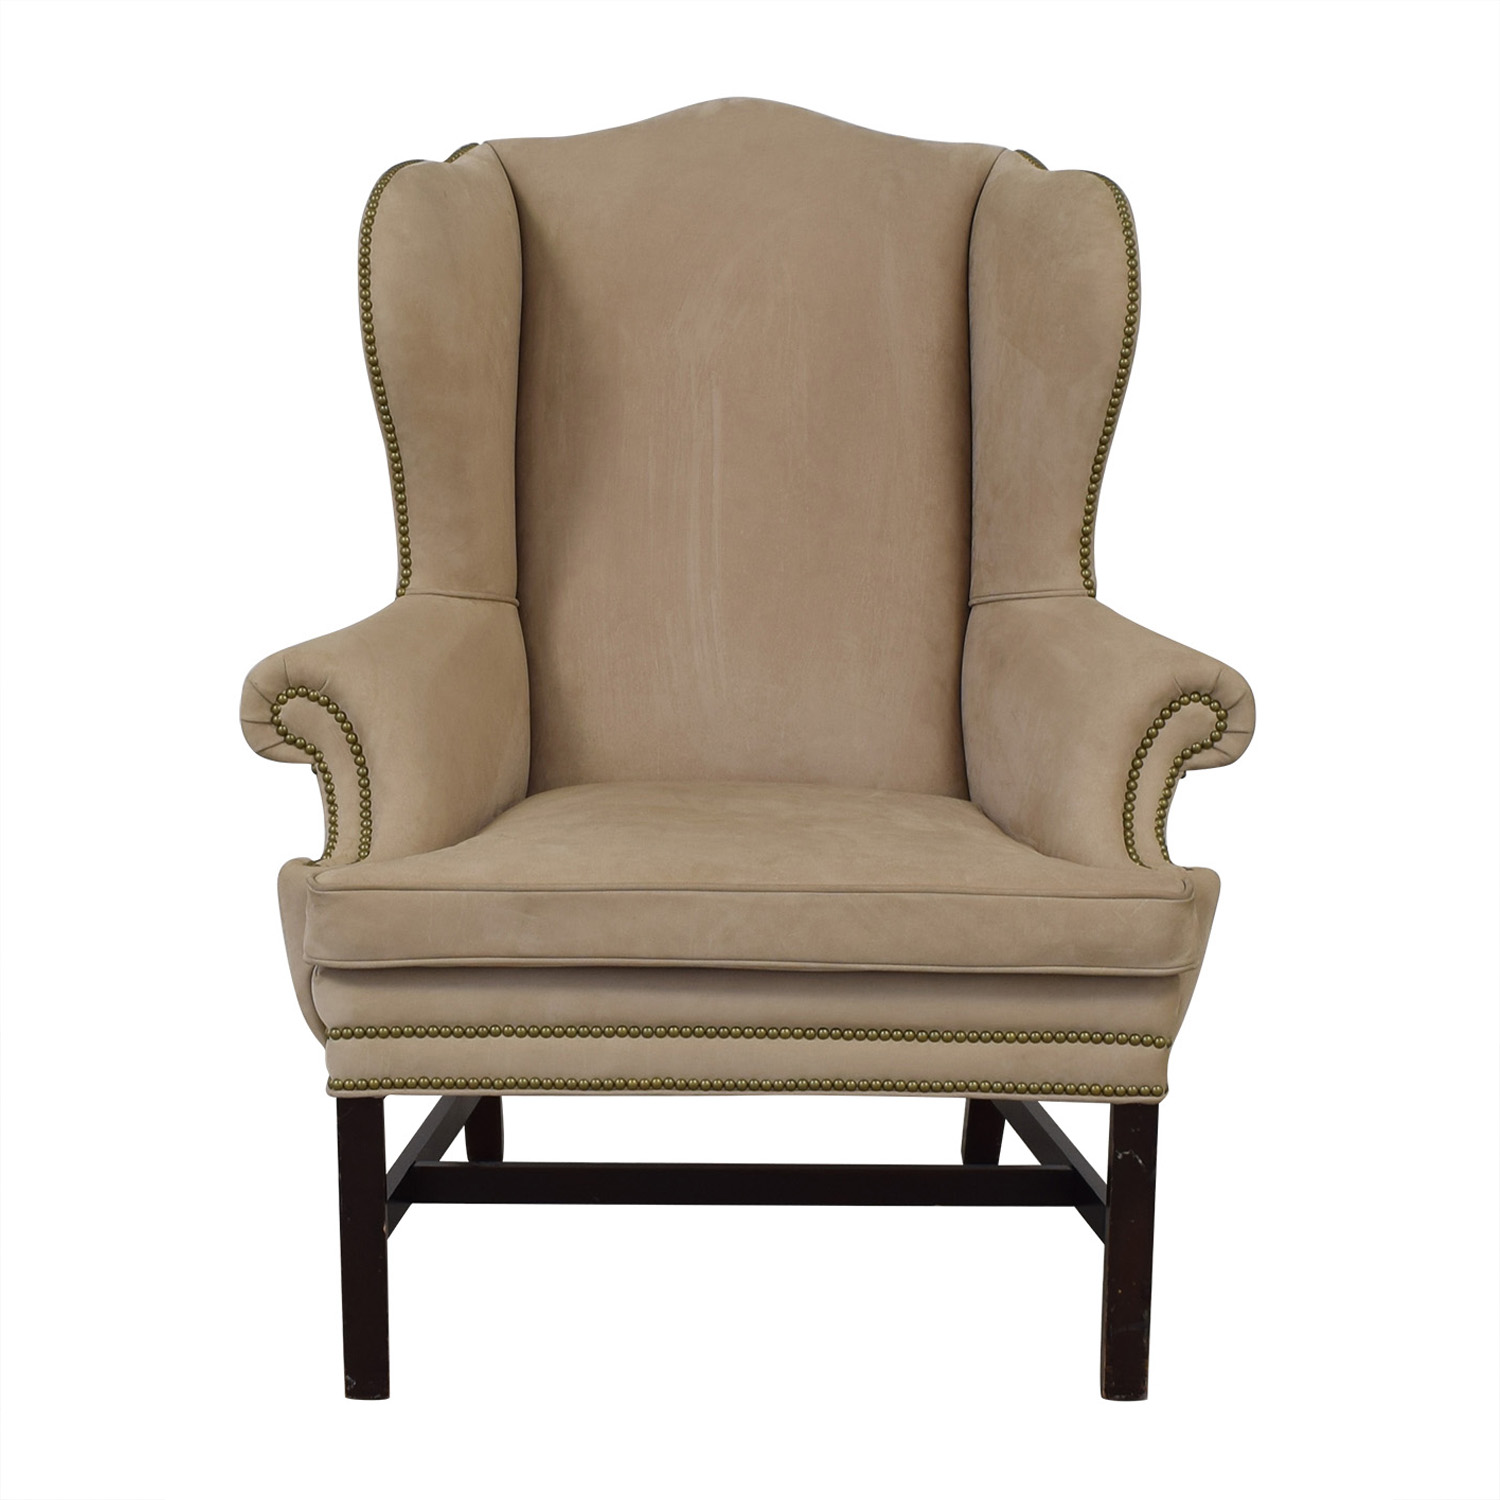 Wing Back Chairs 79 Off Ralph Lauren Home Ralph Lauren Home Beige Nailhead Wingback Chair Chairs